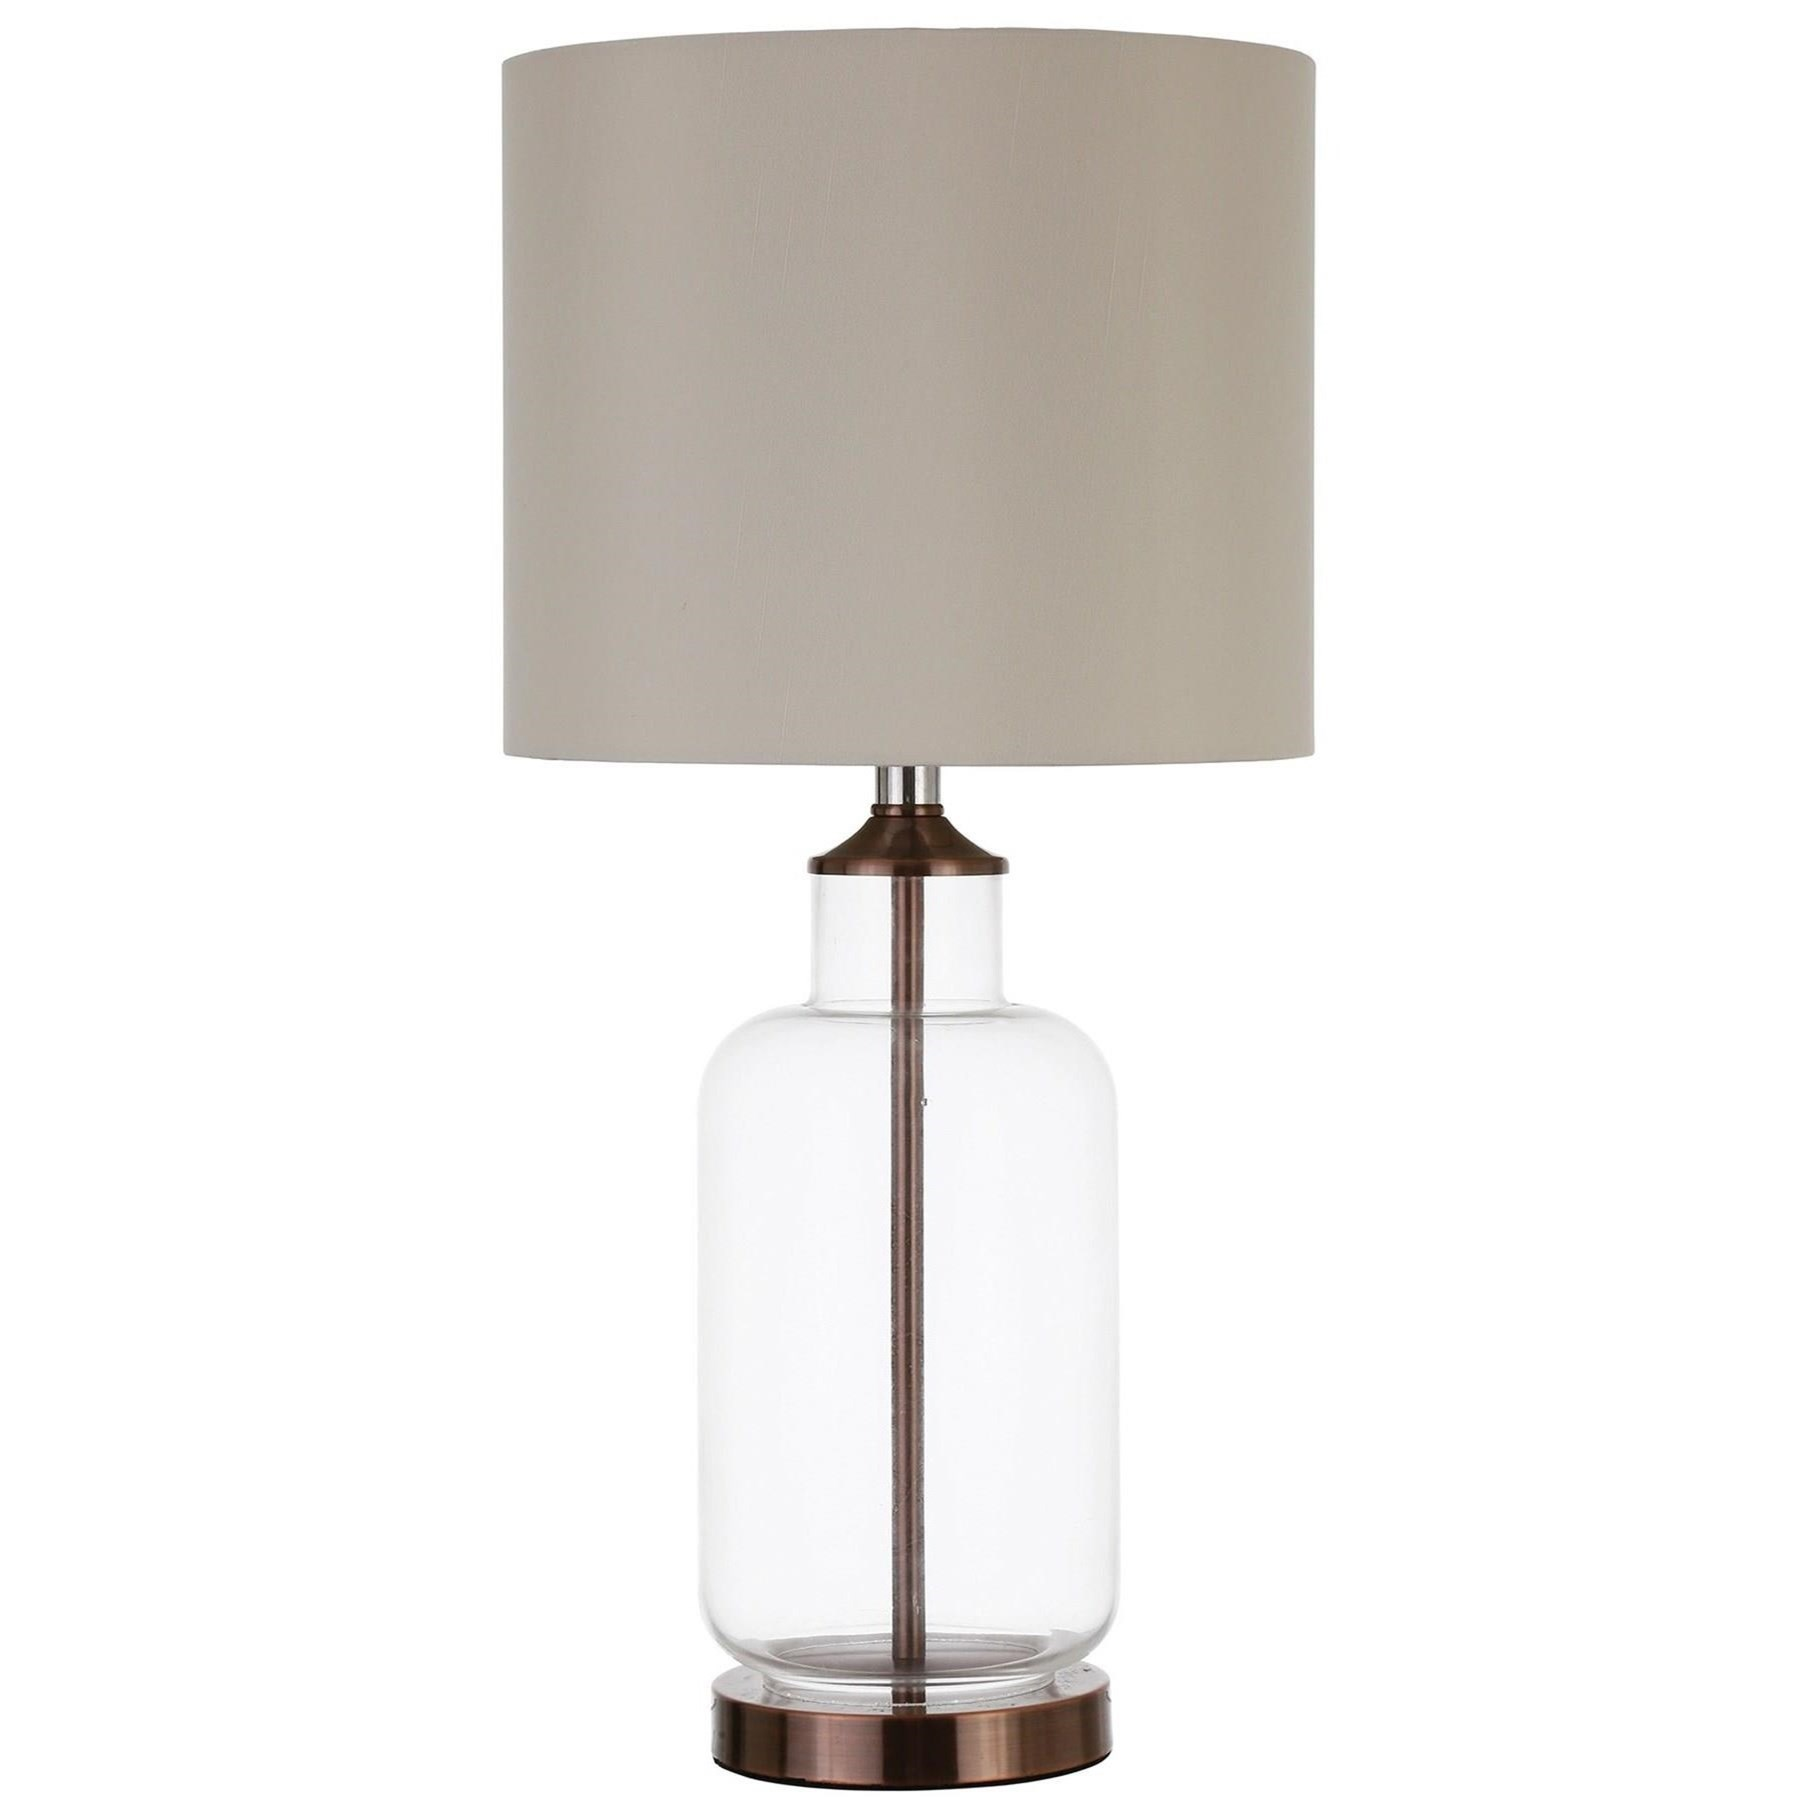 Coaster Table Lamps Table Lamp With Clear Glass Base